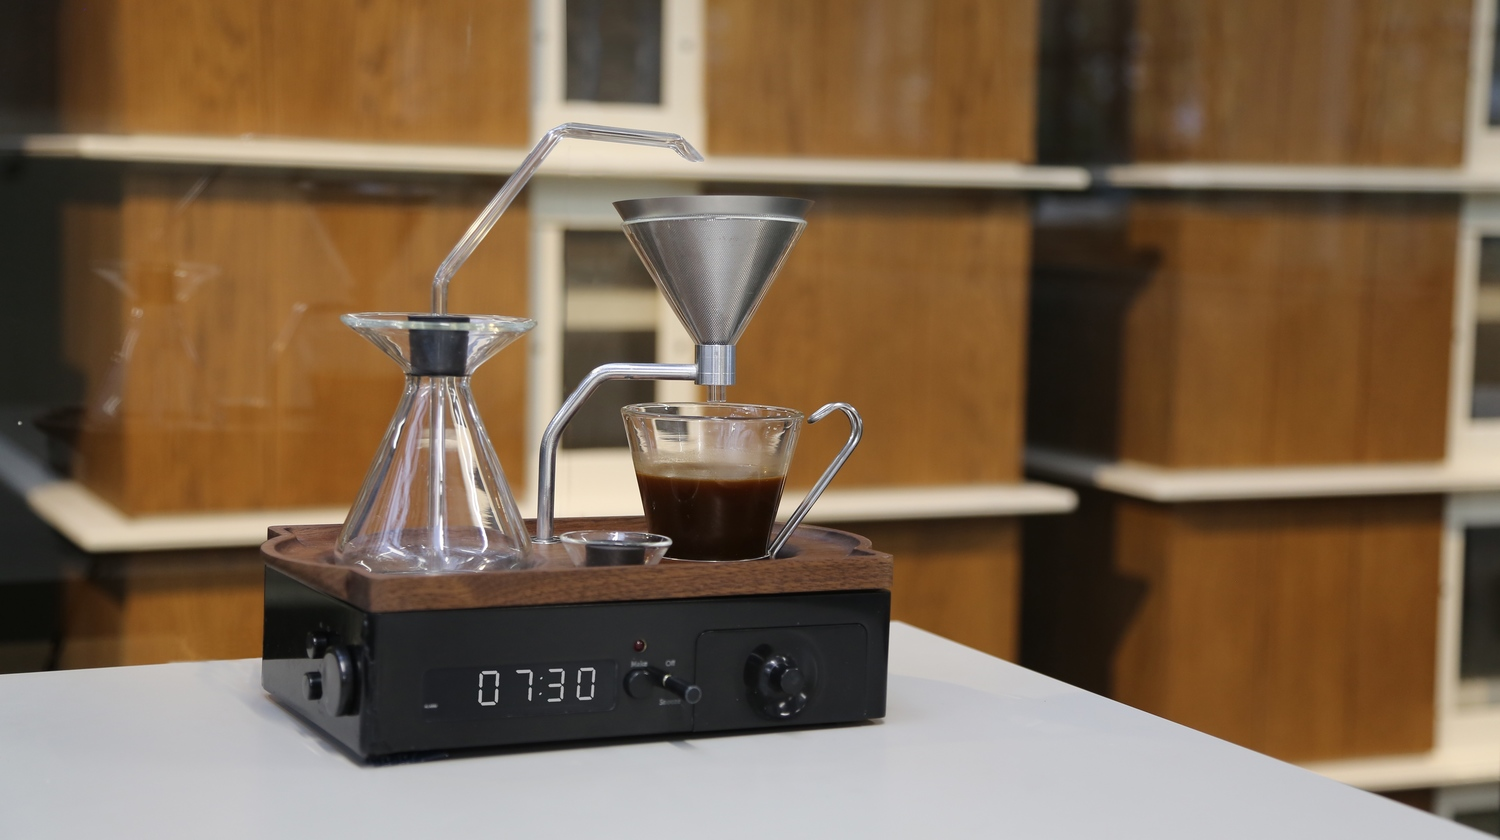 Coffee lovers might never oversleep again, thanks to this coffee-brewing alarm clock